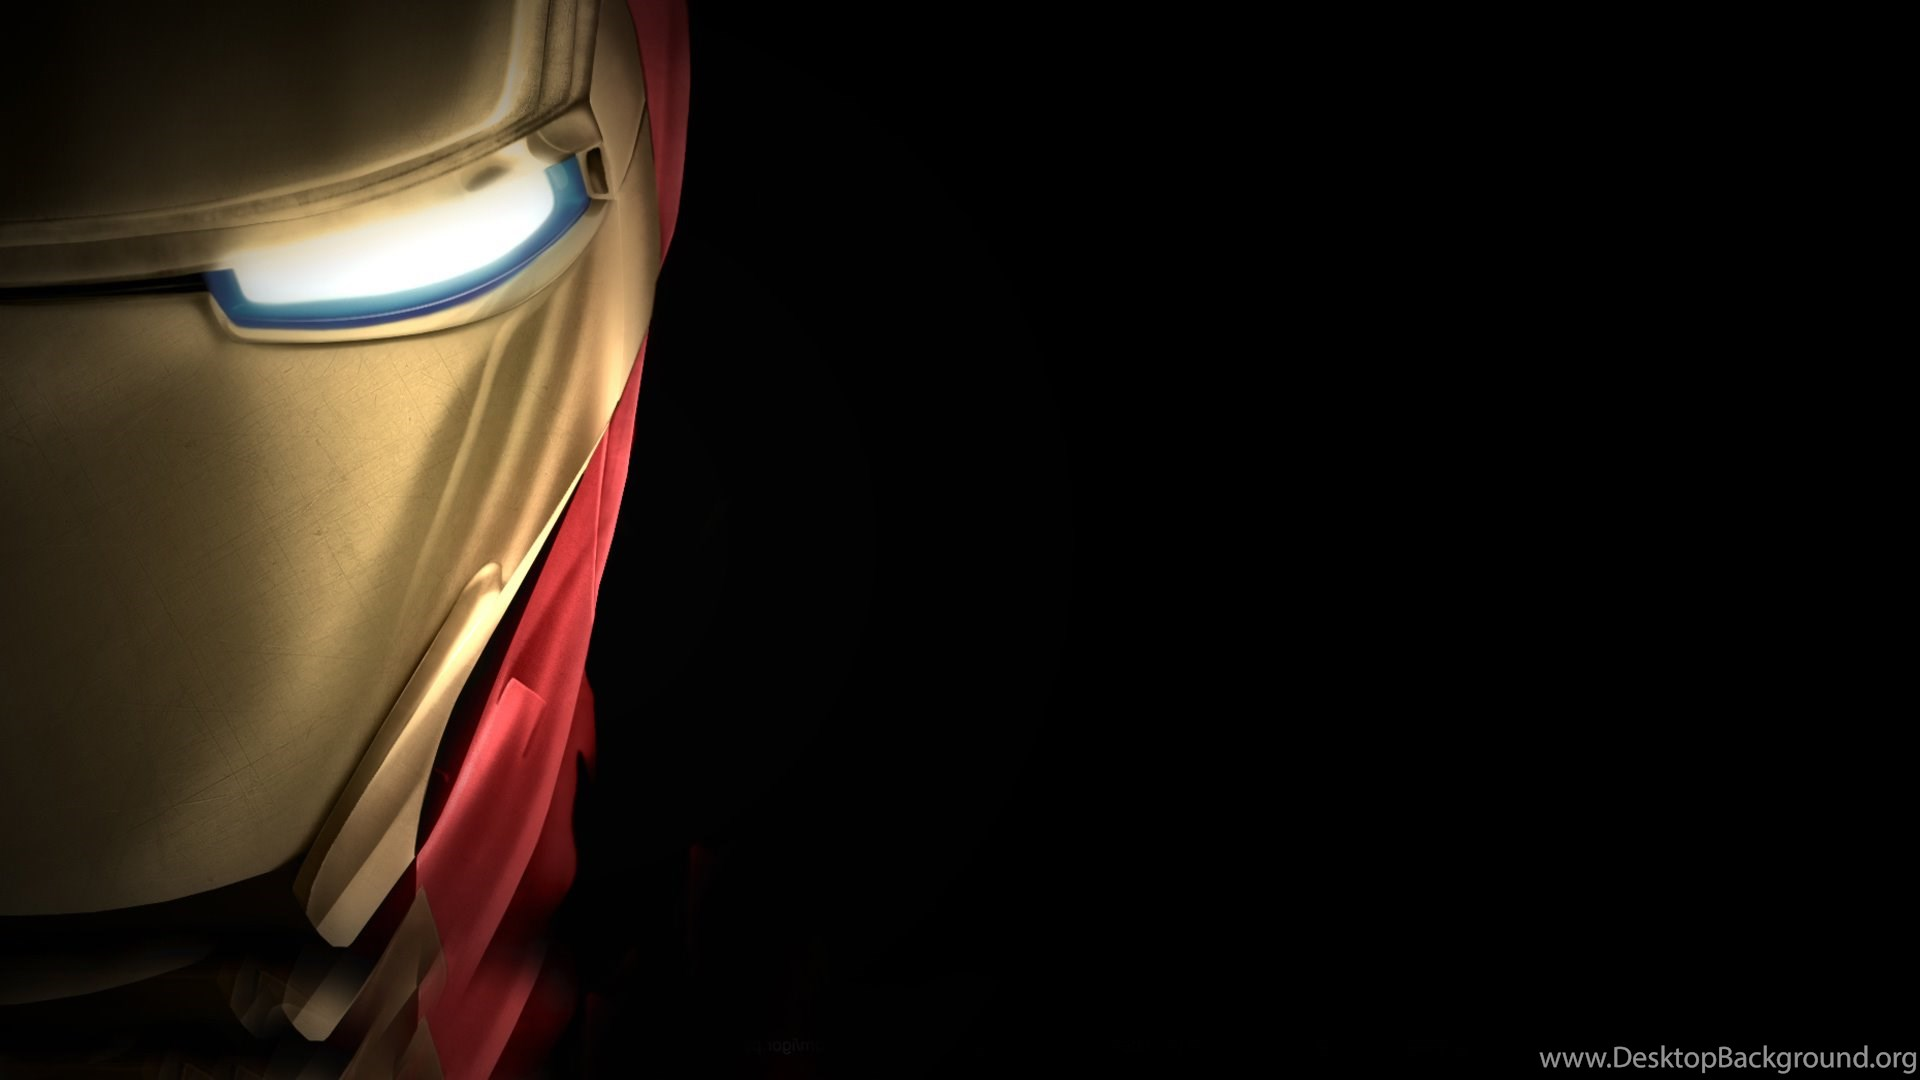 Hd Cool Iron Man Mask Wallpapers Full Size Hirewallpapers 1221